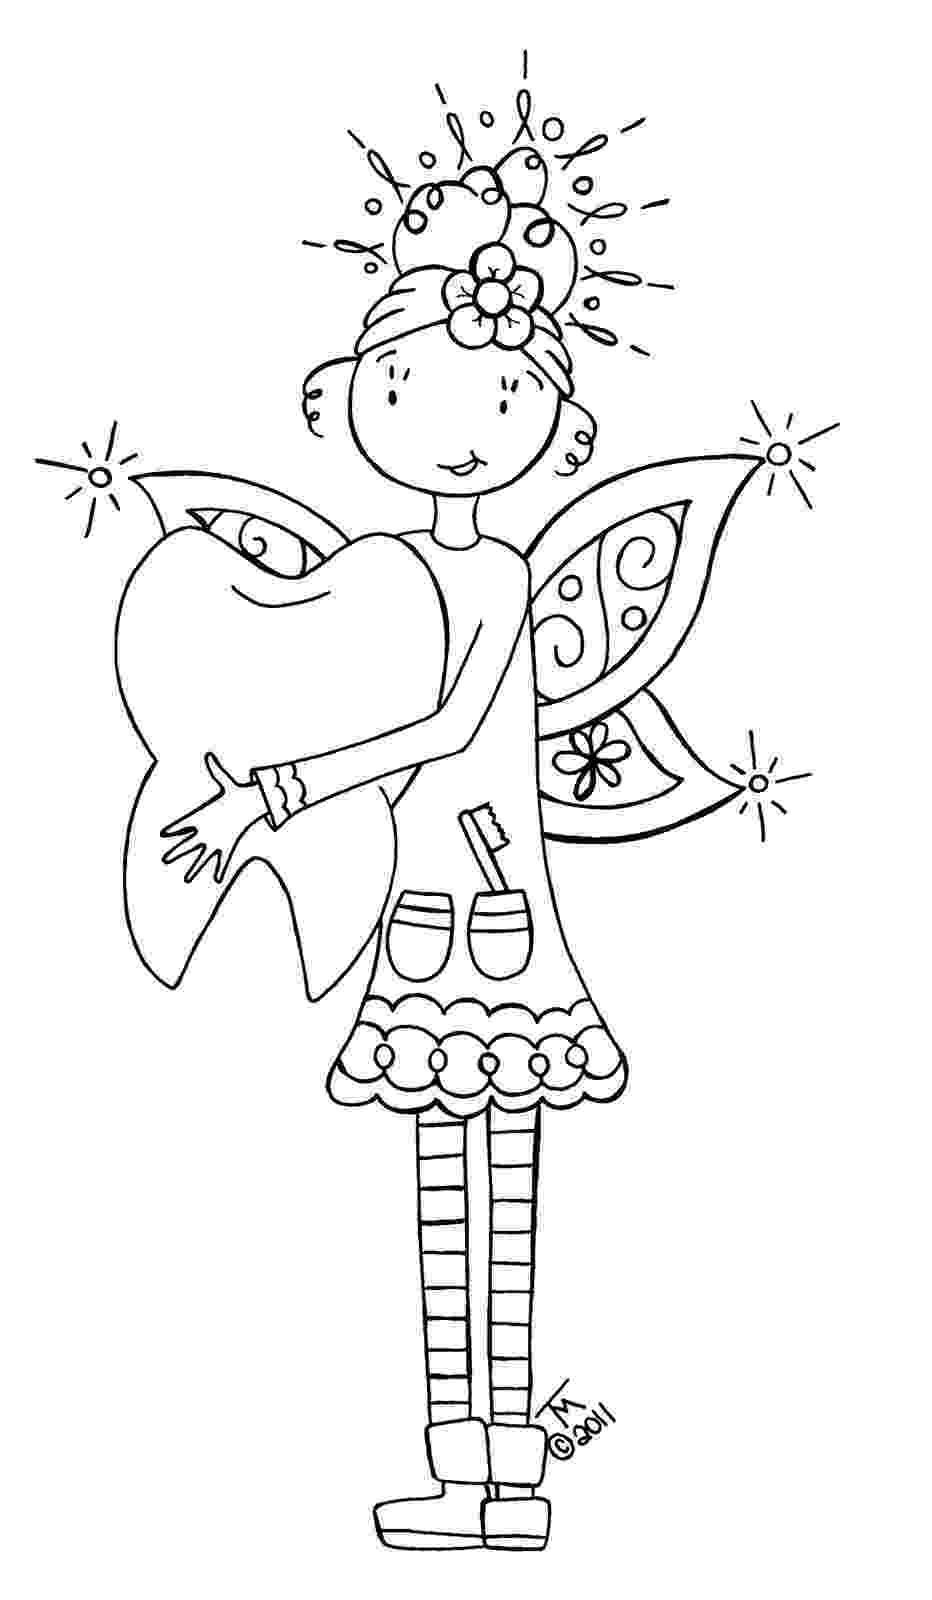 tooth fairy coloring pages tooth fairy worksheet educationcom tooth pages coloring fairy